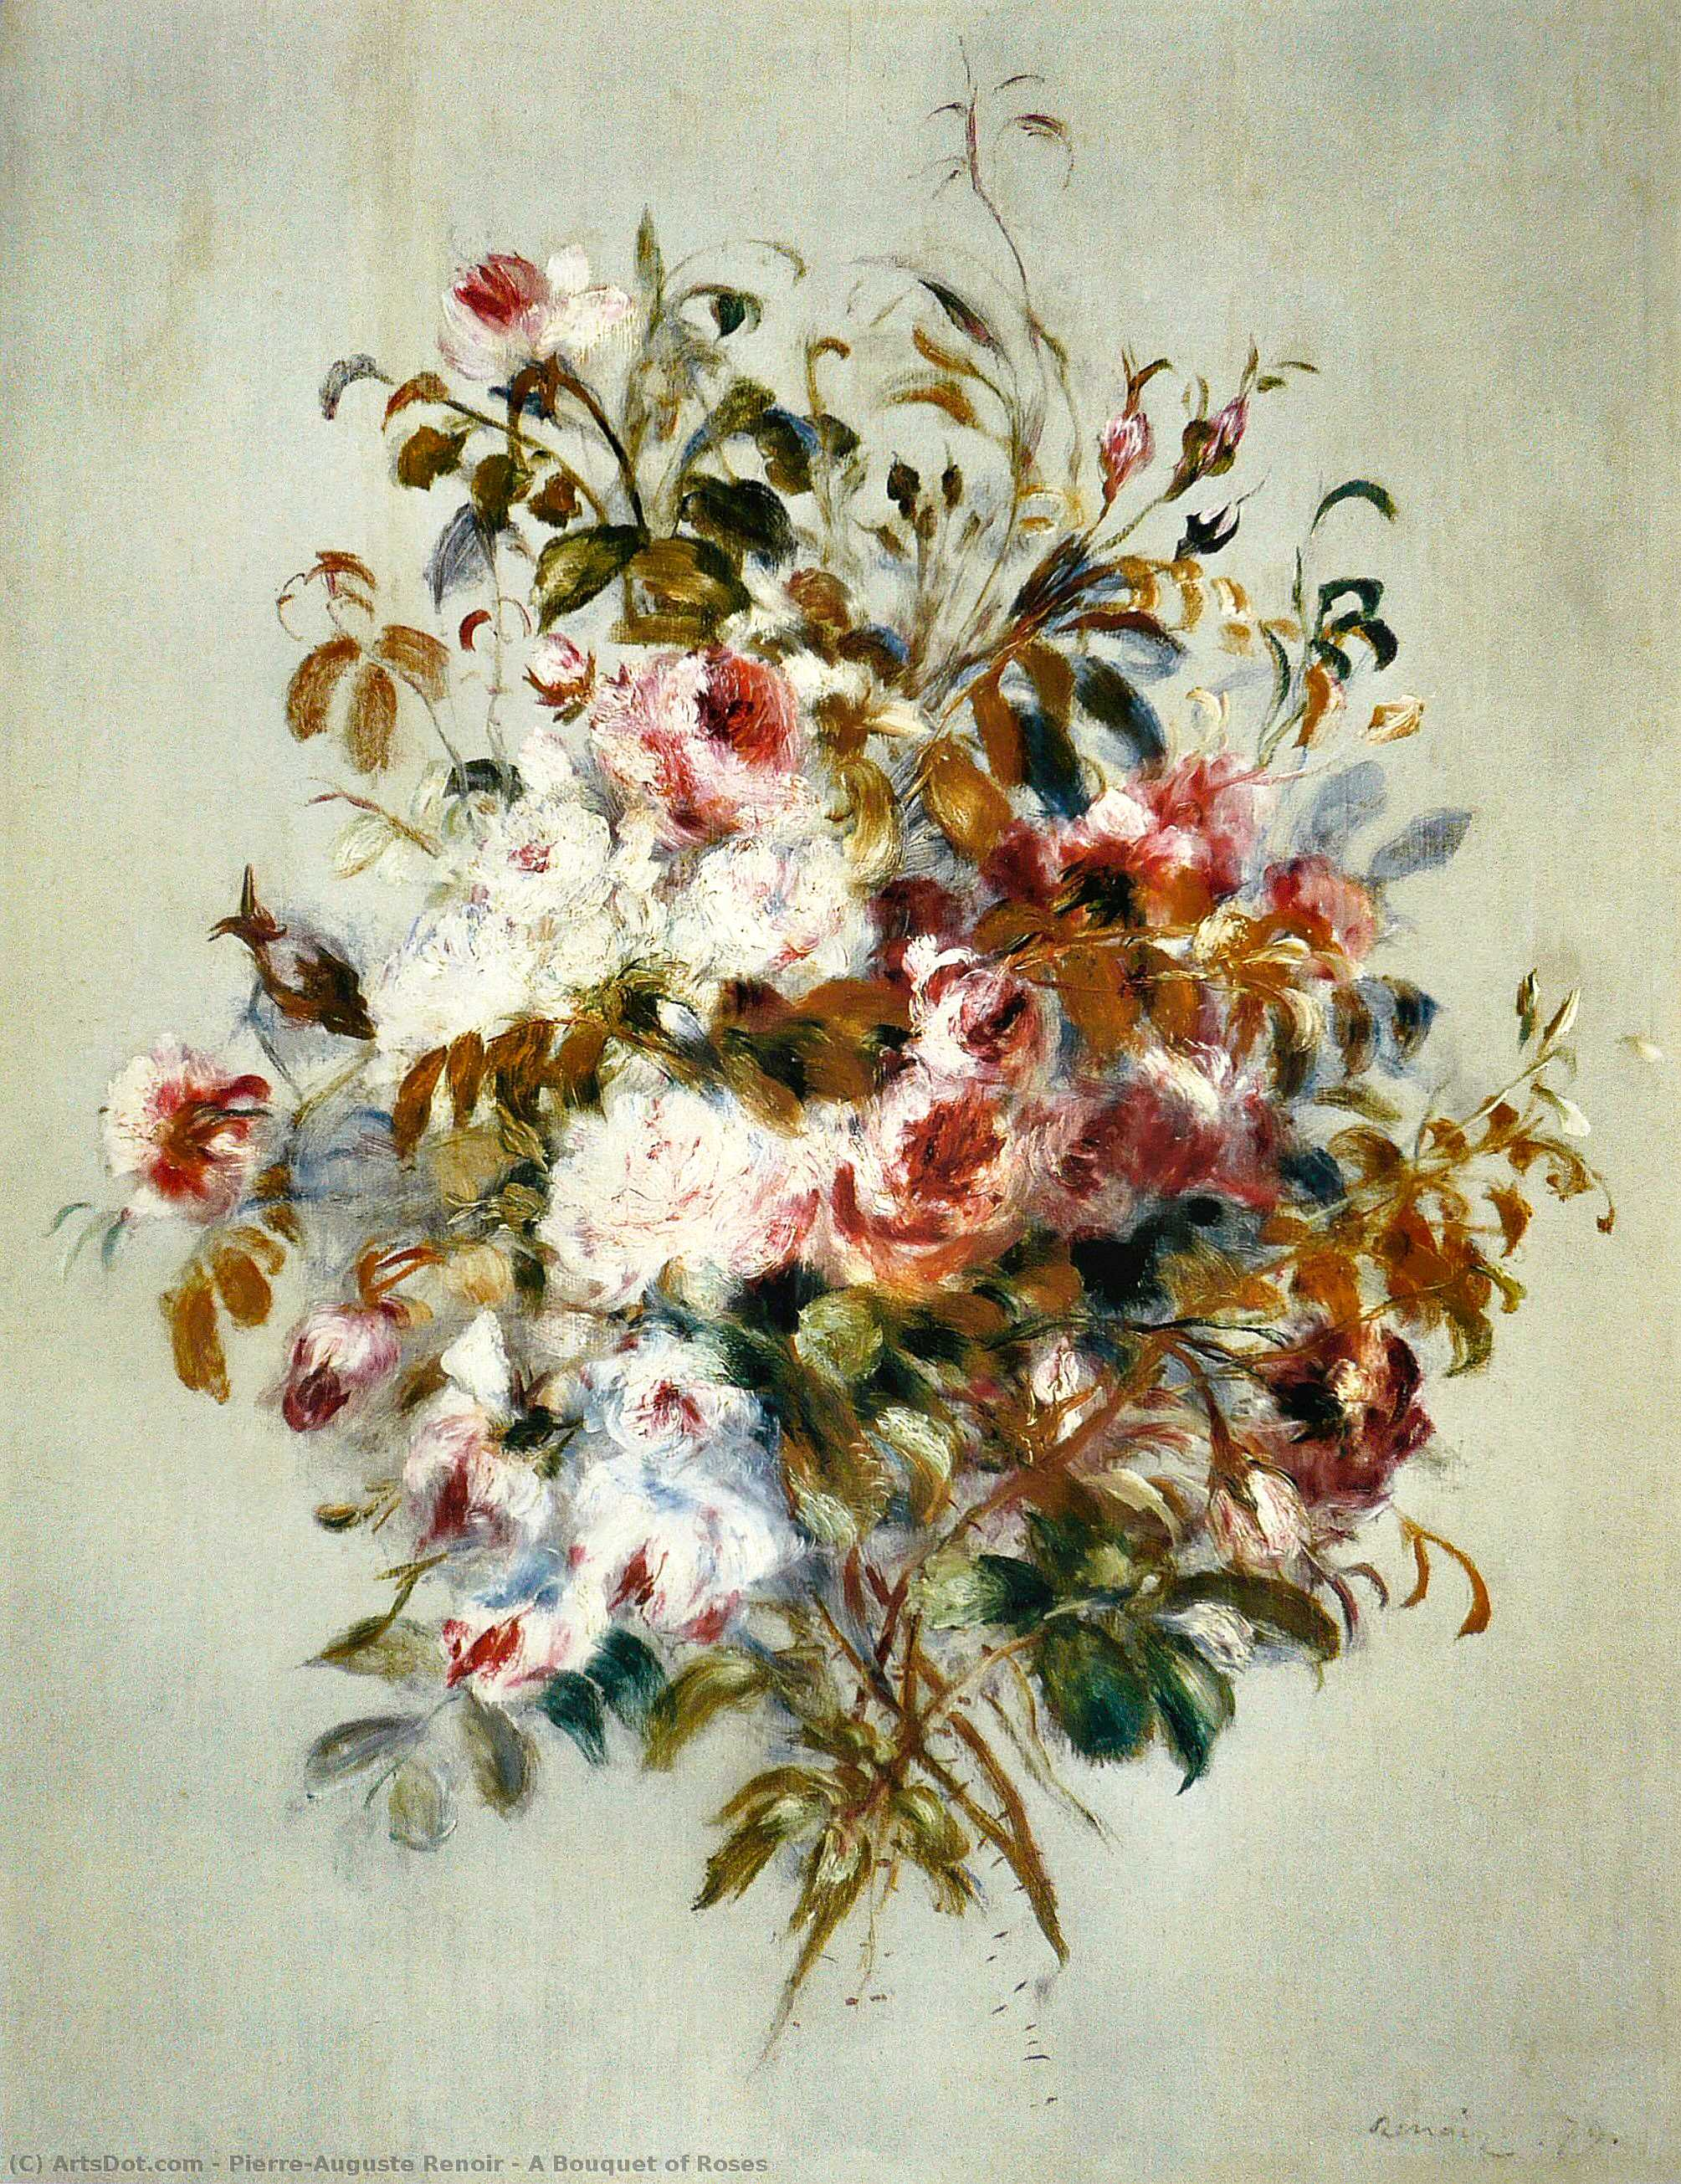 Order Paintings Reproductions | A Bouquet of Roses, 1879 by Pierre-Auguste Renoir (1841-1919, France) | ArtsDot.com